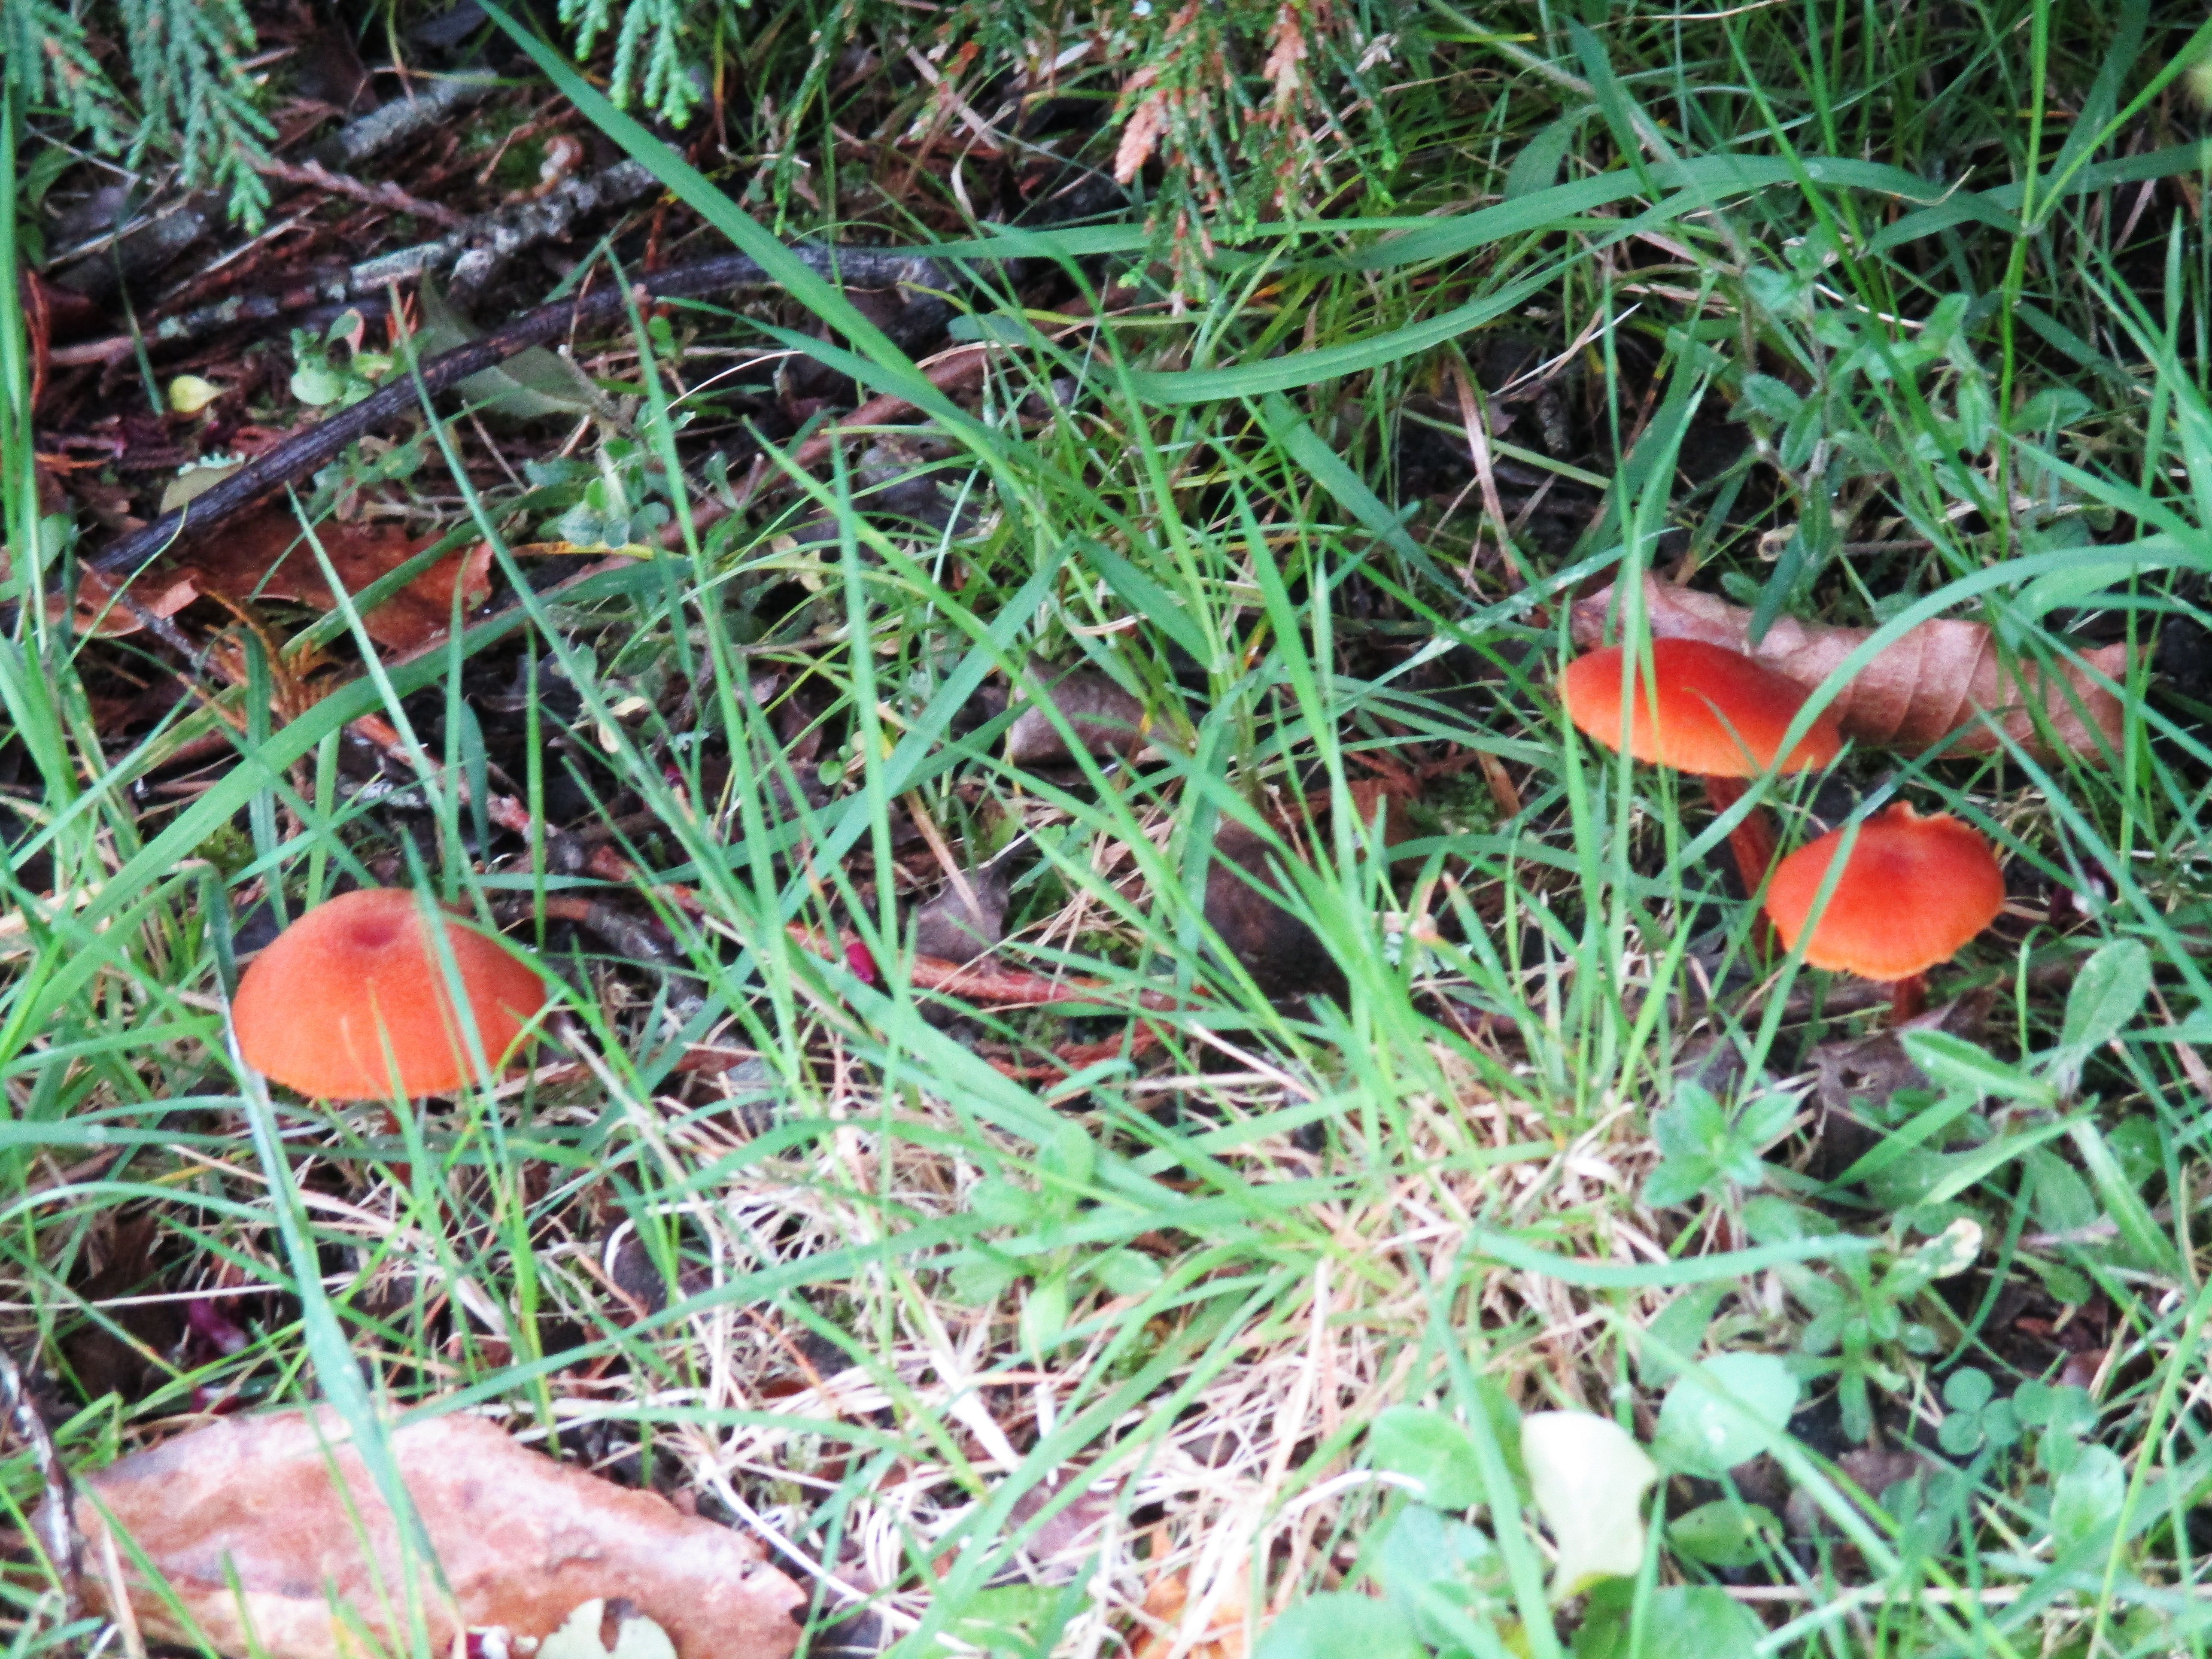 Photo I took of poisonous mushrooms growing in our yard ...